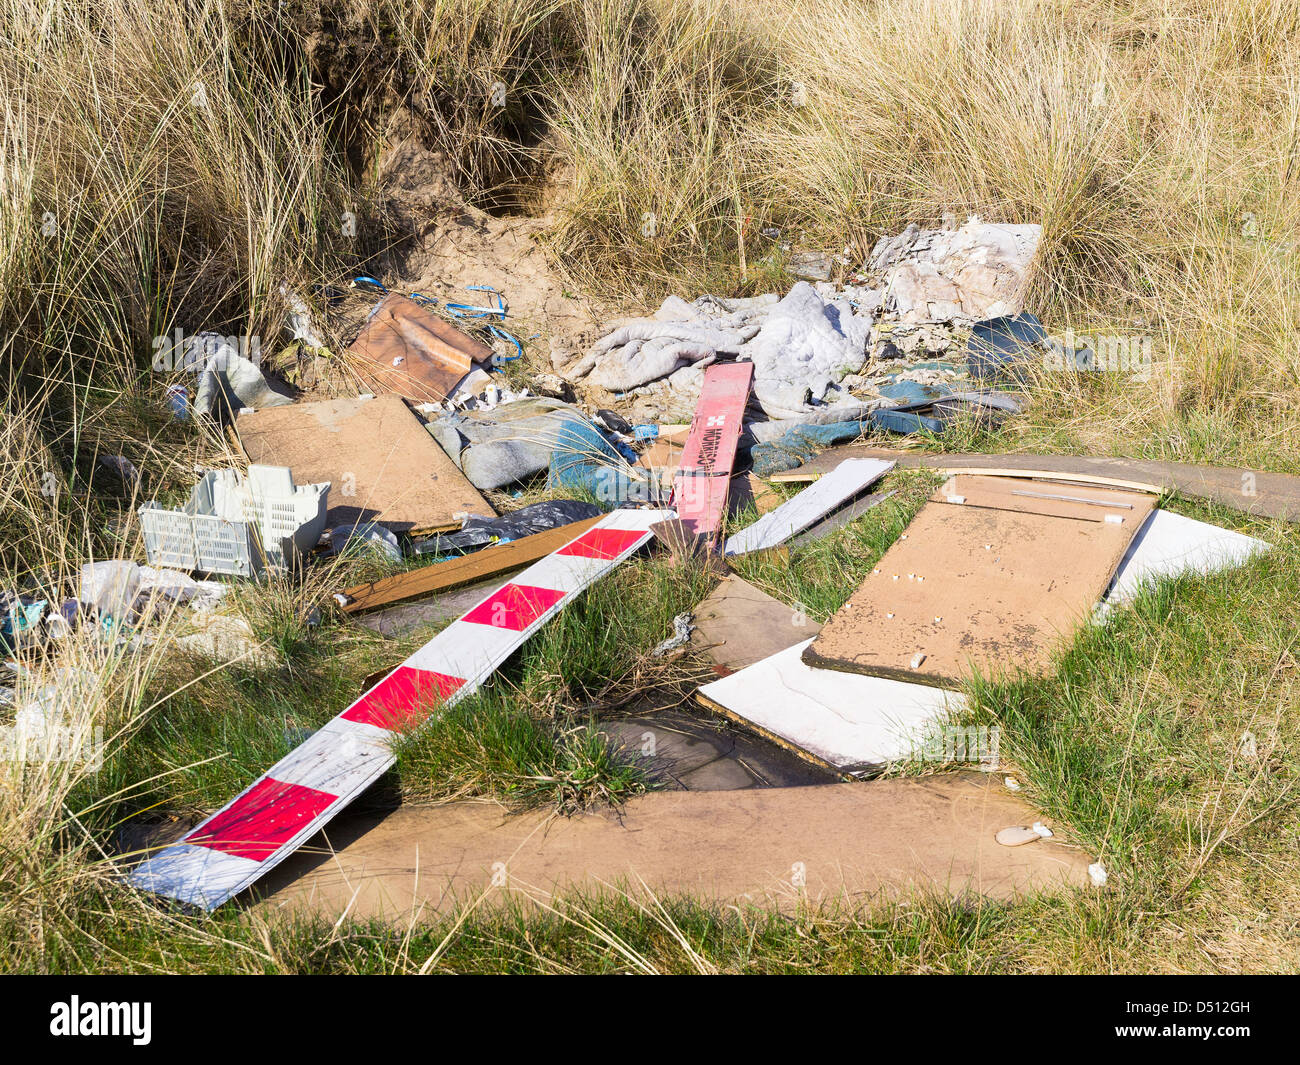 Fly tipping leaves an unsightly mess beside the road - Stock Image